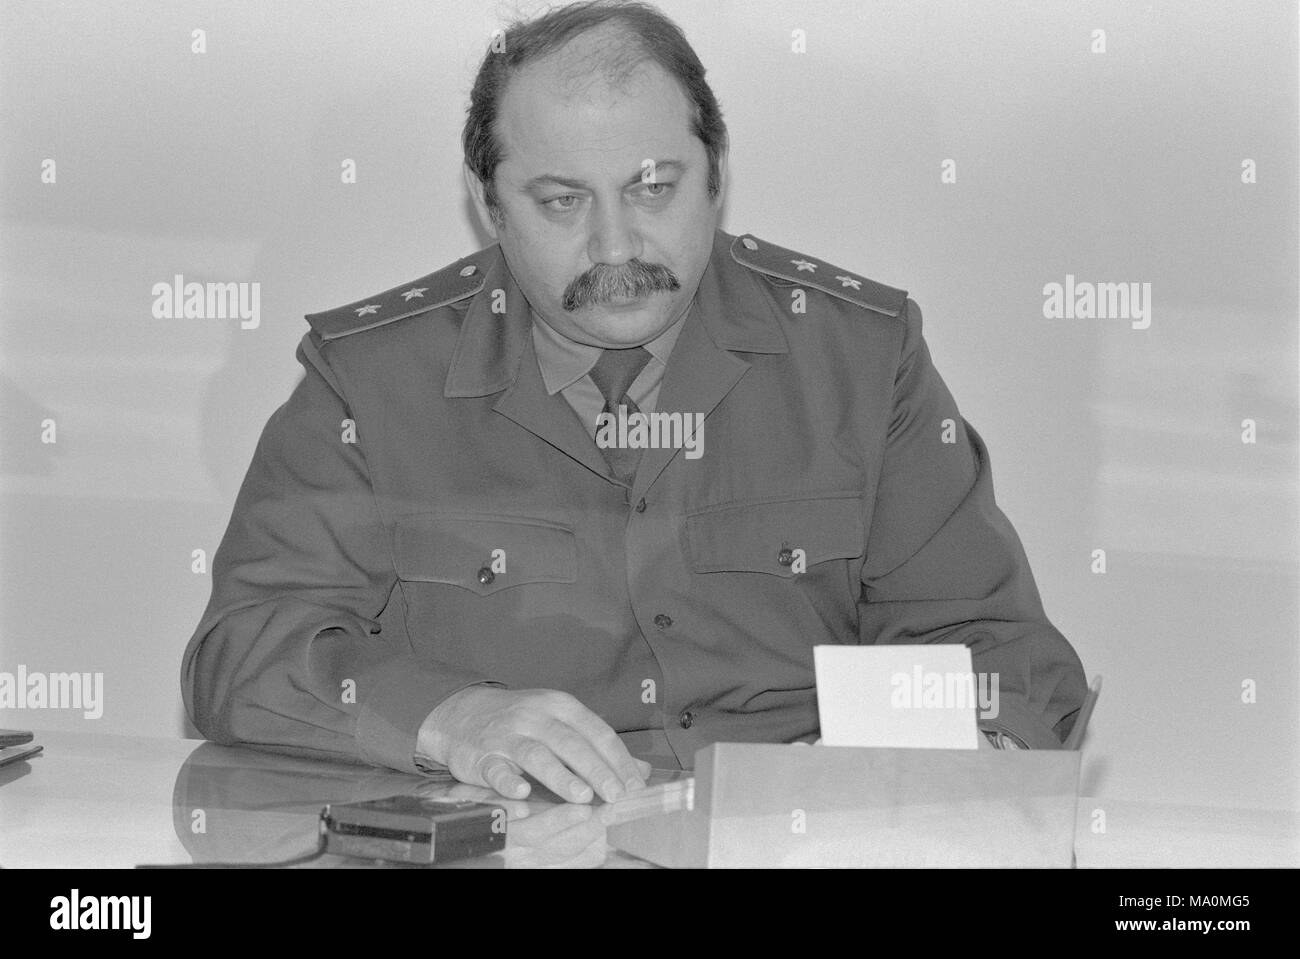 Moscow, Russia - February 28, 1992: First Deputy Defence Advisor of Russian Federation Samoylov Viktor Ivanovich in his cabinet. - Stock Image